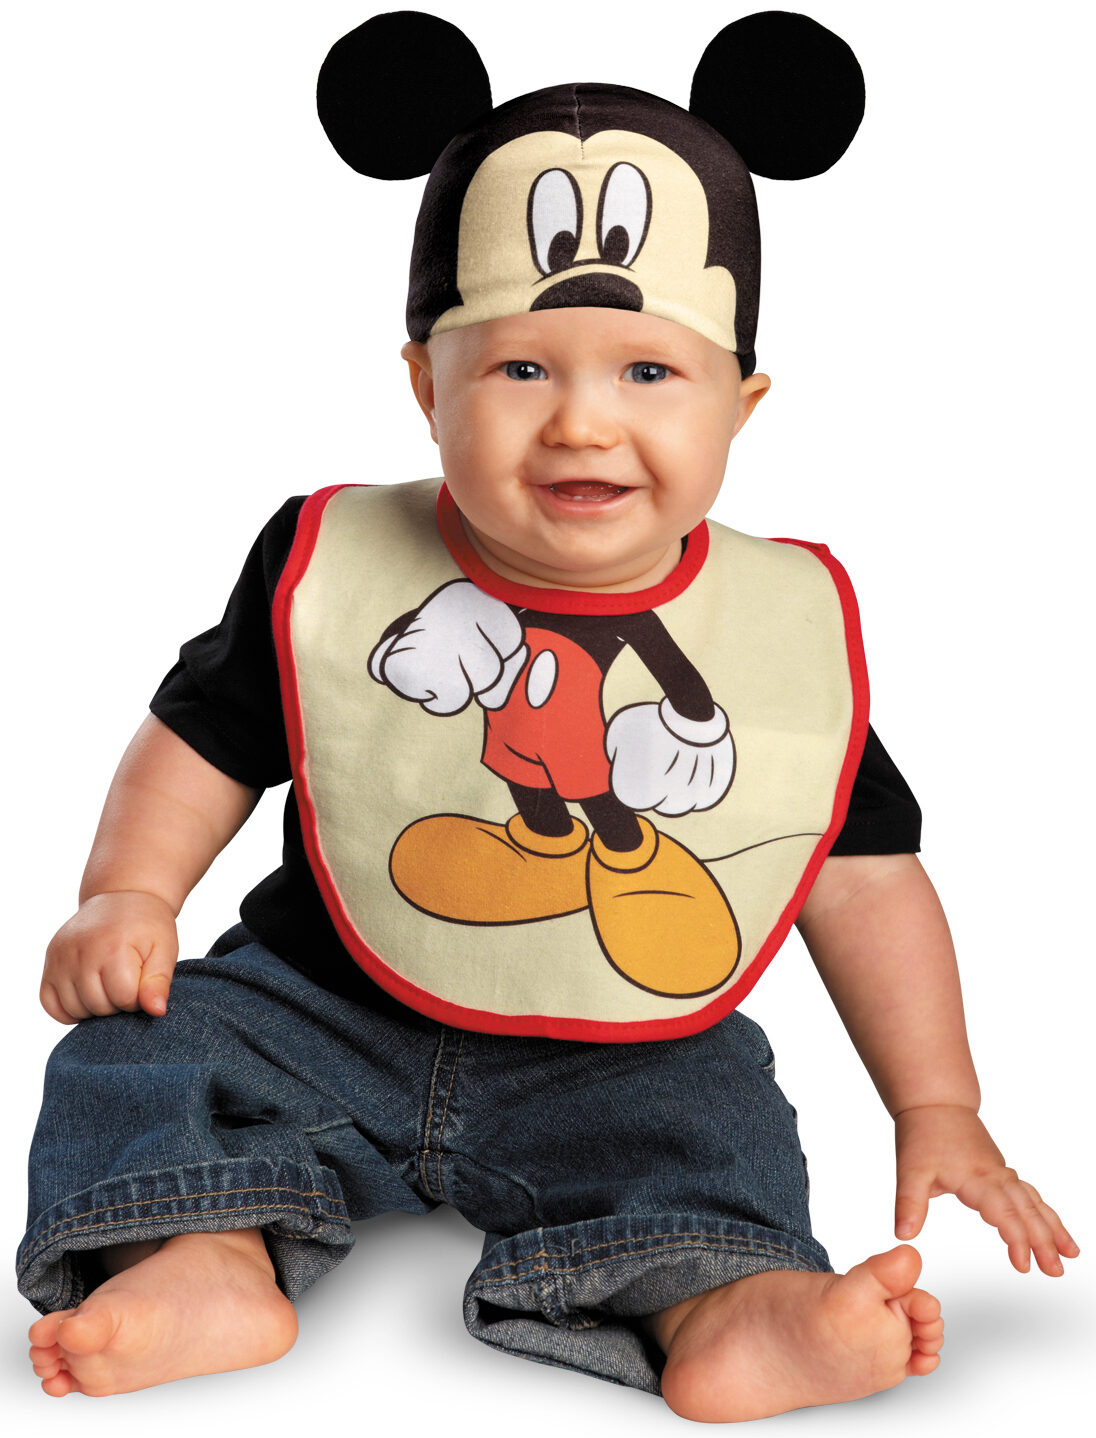 Disney Mickey Mouse Bib and Hat Baby Costume - Mr. Costumes 0dfd26d1d31